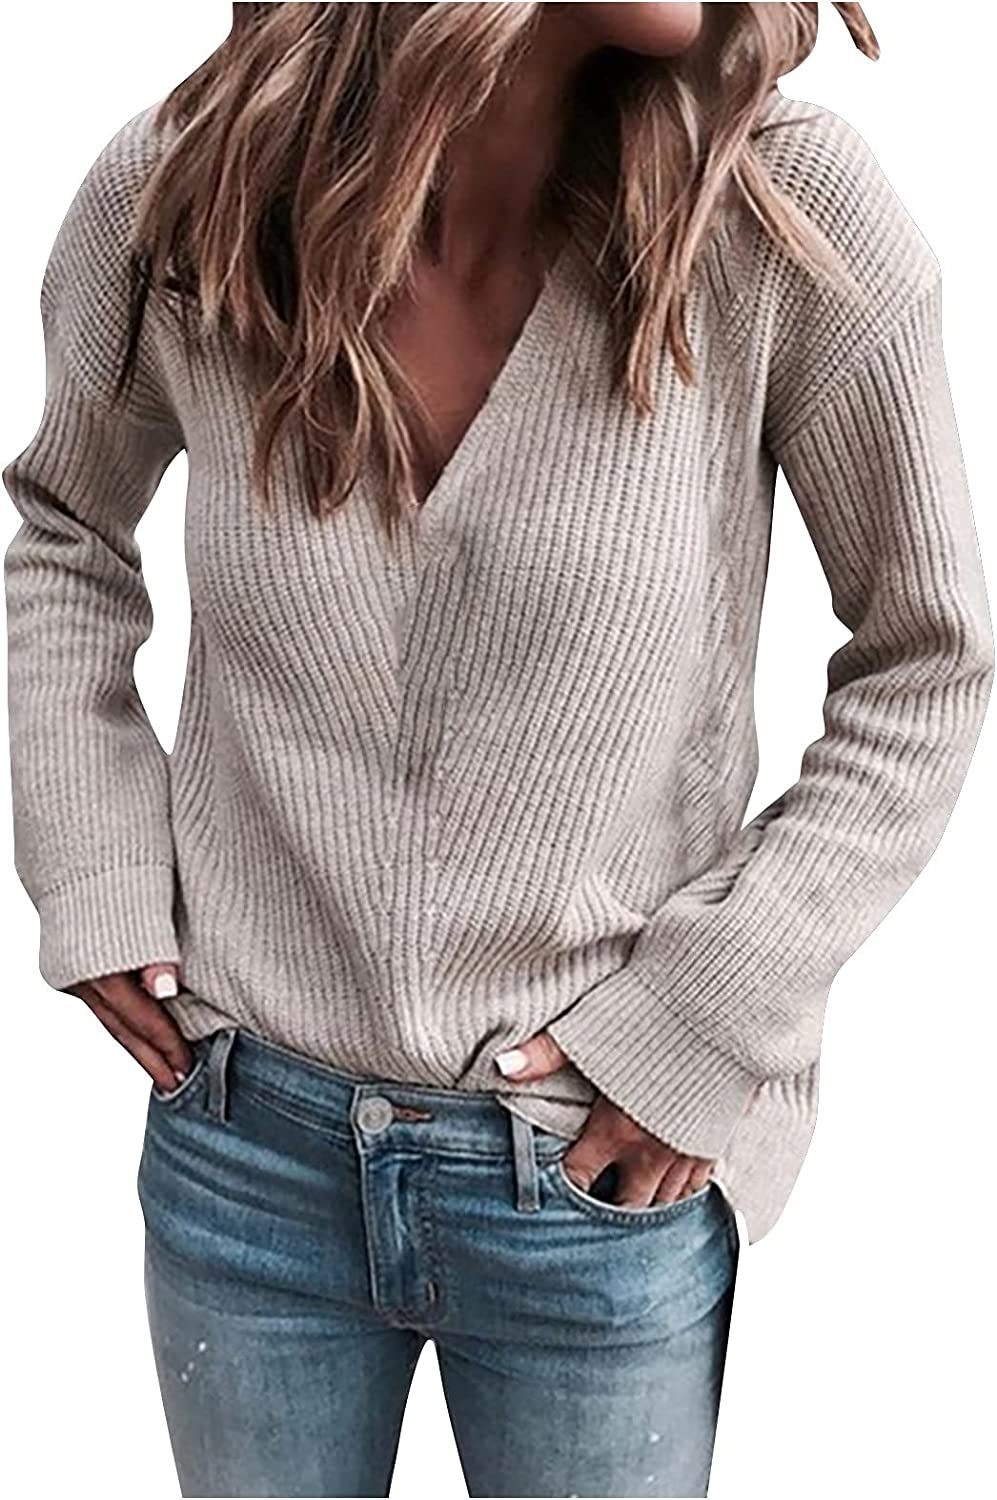 Yahari Womens Baggy Knitted Sweater Jumper Sexy Ribbed V Neck Long Sleeve Knitwear Solid Sweaters Pullover Tops Blouse